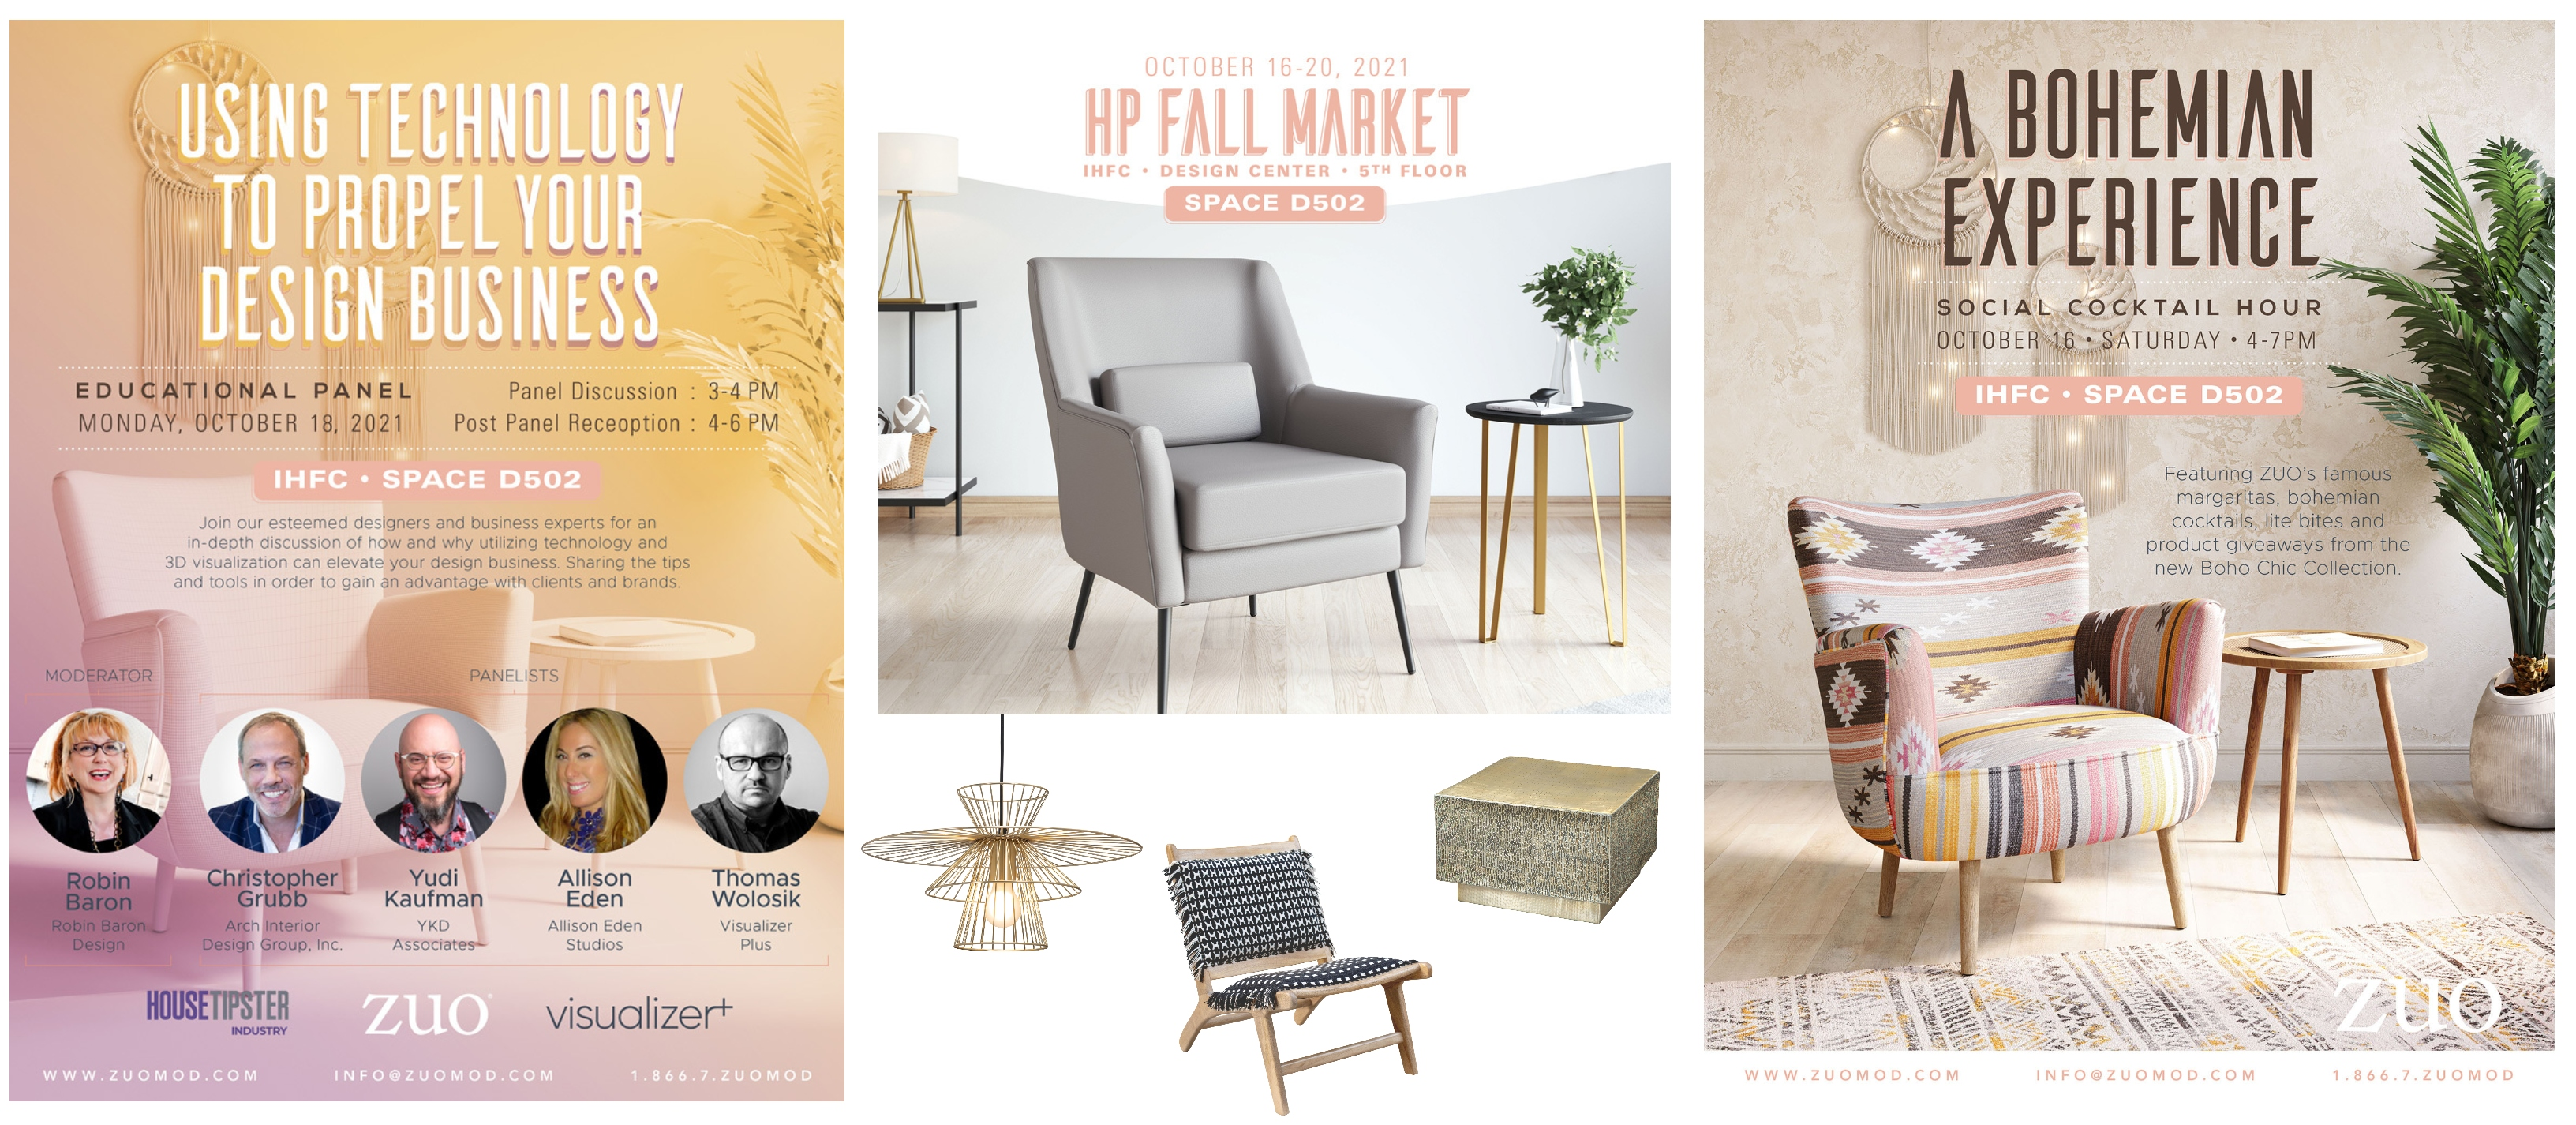 Positives outweigh negatives as furniture industry heads to High Point